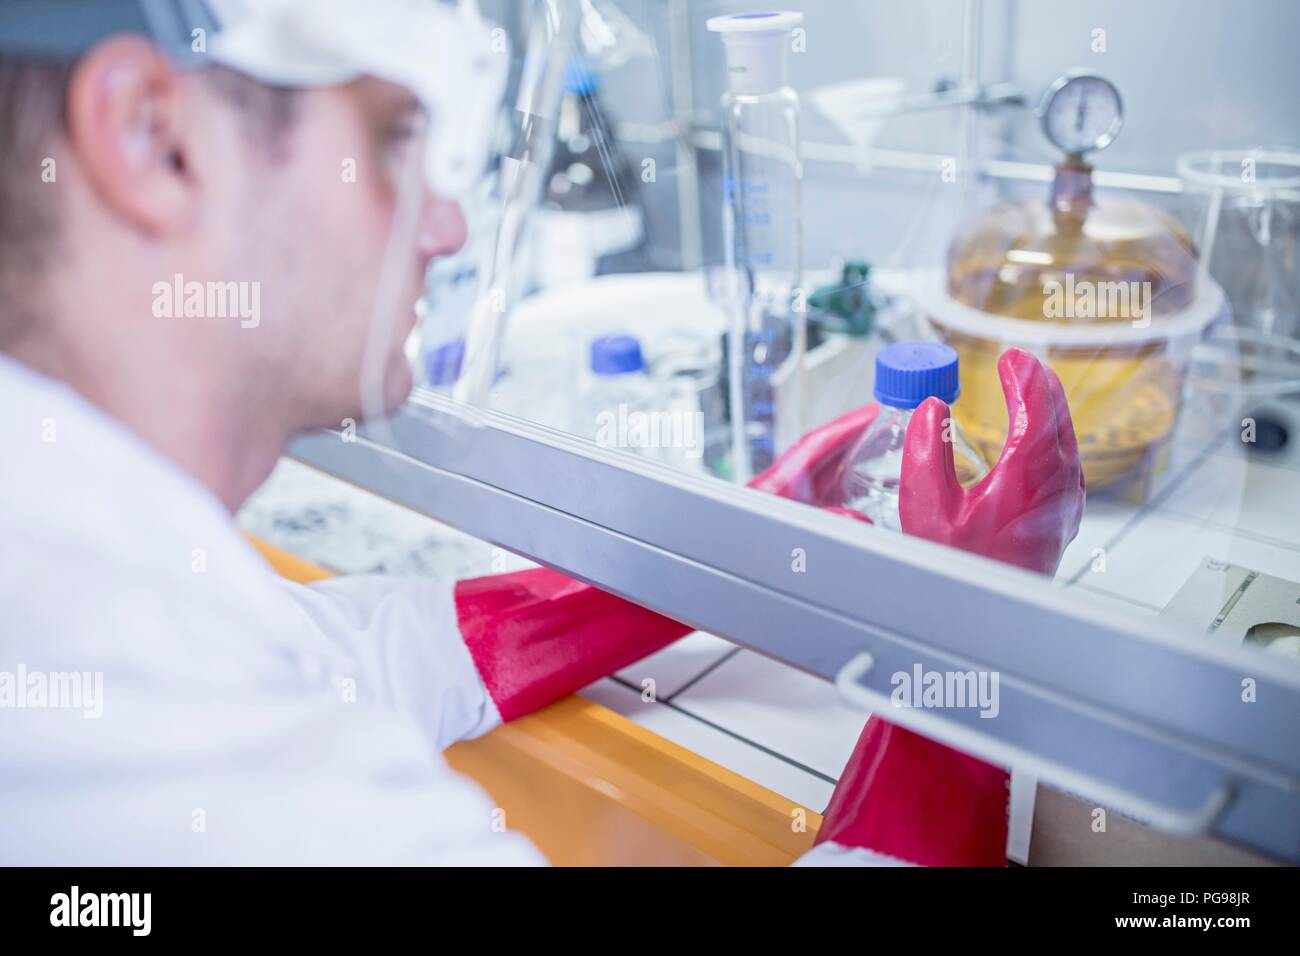 Lab technician using a laminar flow hood, thick gloves and a face shield while working with dangerous chemicals. - Stock Image